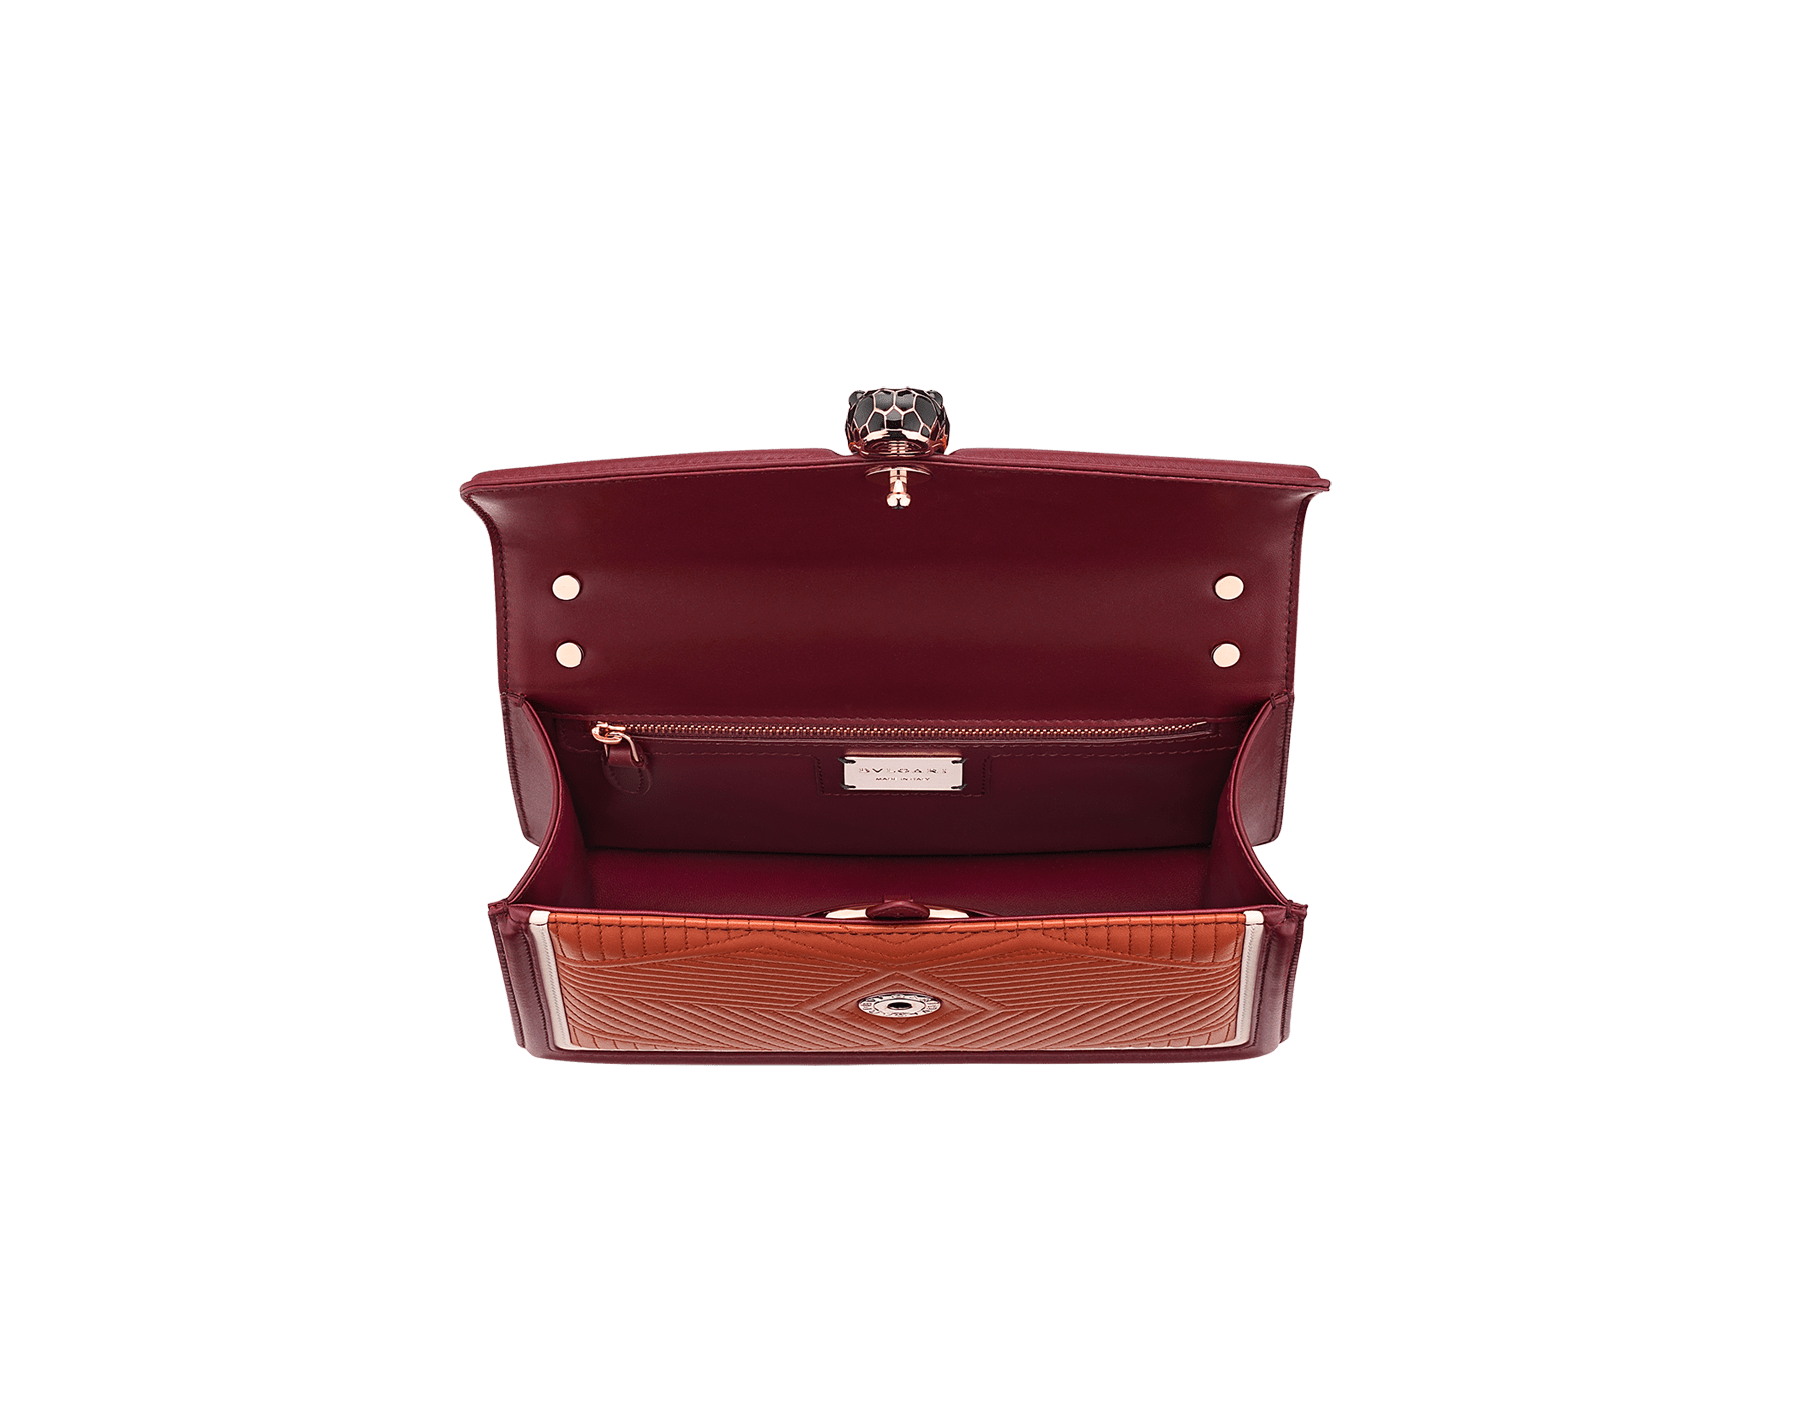 Serpenti Diamond Blast shoulder bag in imperial topaz quilted nappa leather with white agate and Roman garnet calf leather frames. Iconic snakehead closure in light gold plated brass embellished with Roman garnet and black enamel and black onyx eyes. 288827 image 4